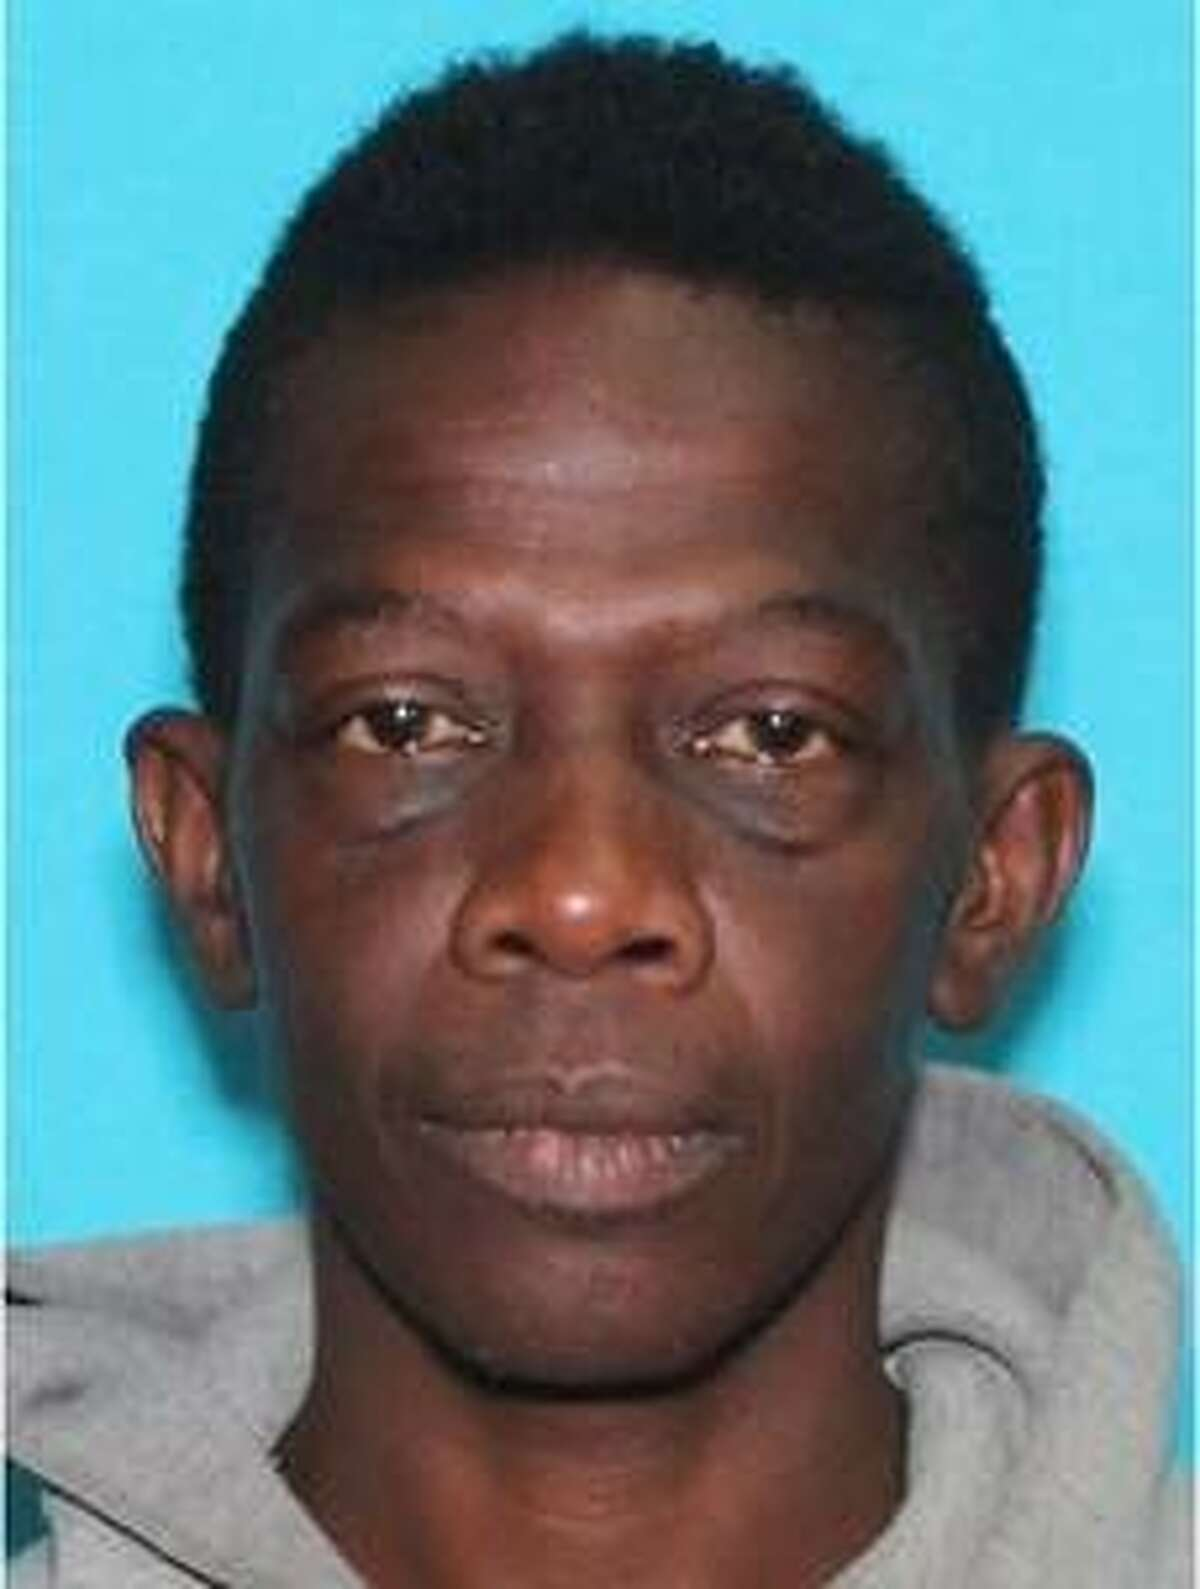 Henry Anthony Taylor, 52, is wanted by the Texas Department of Public Safety for failing to register as a sex offender.